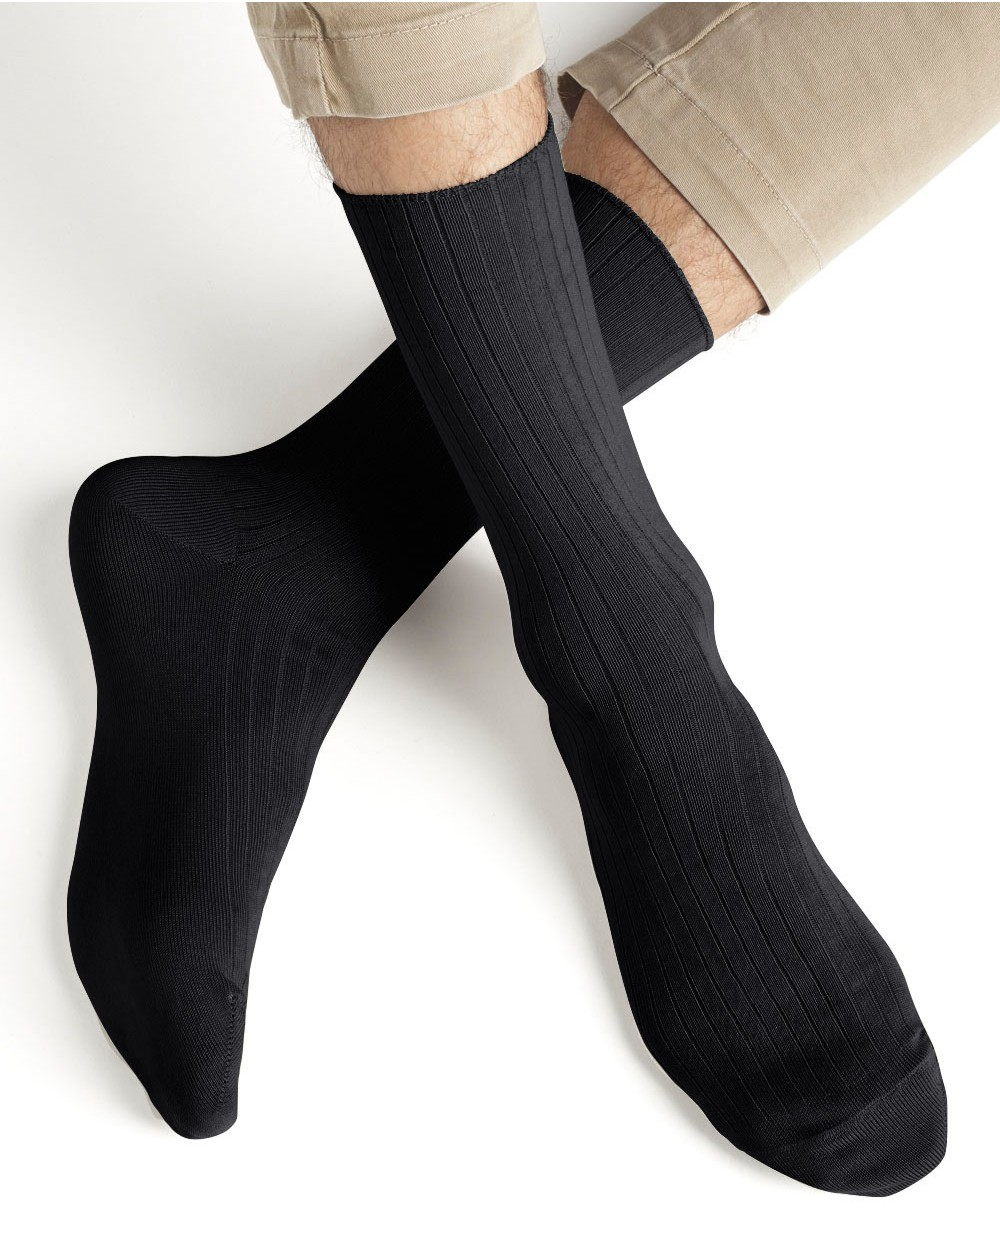 Non-binding mercerised cotton socks